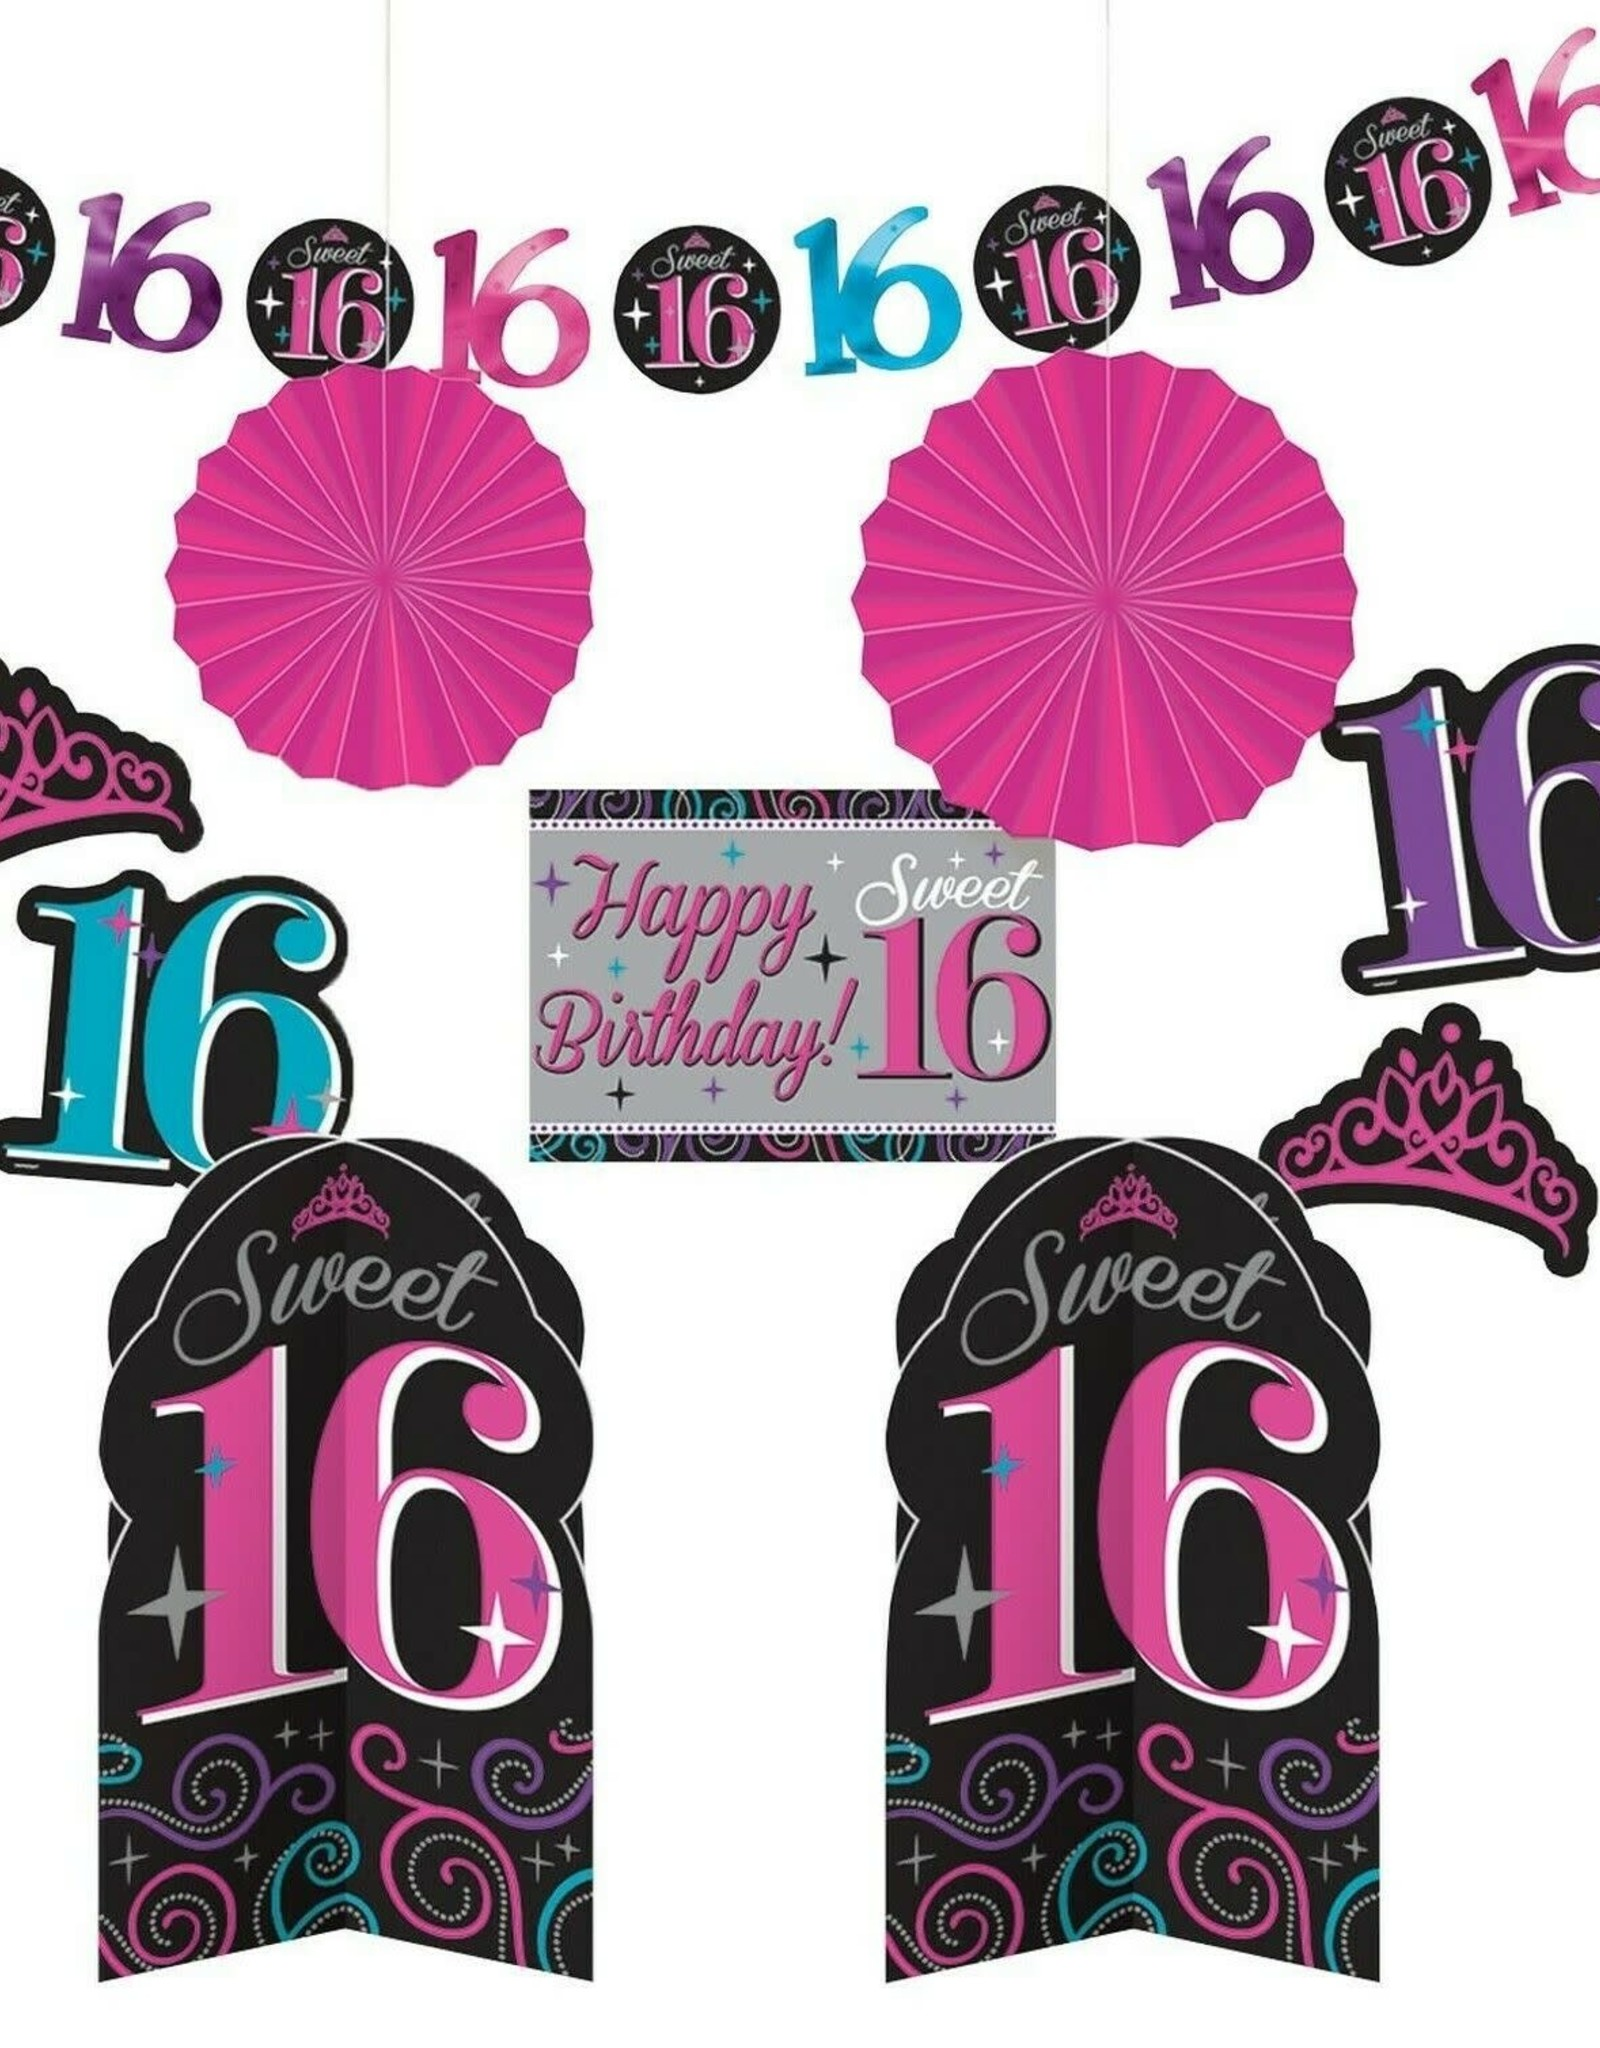 Wallys party factory Sweet 16 Room Decorating Kit